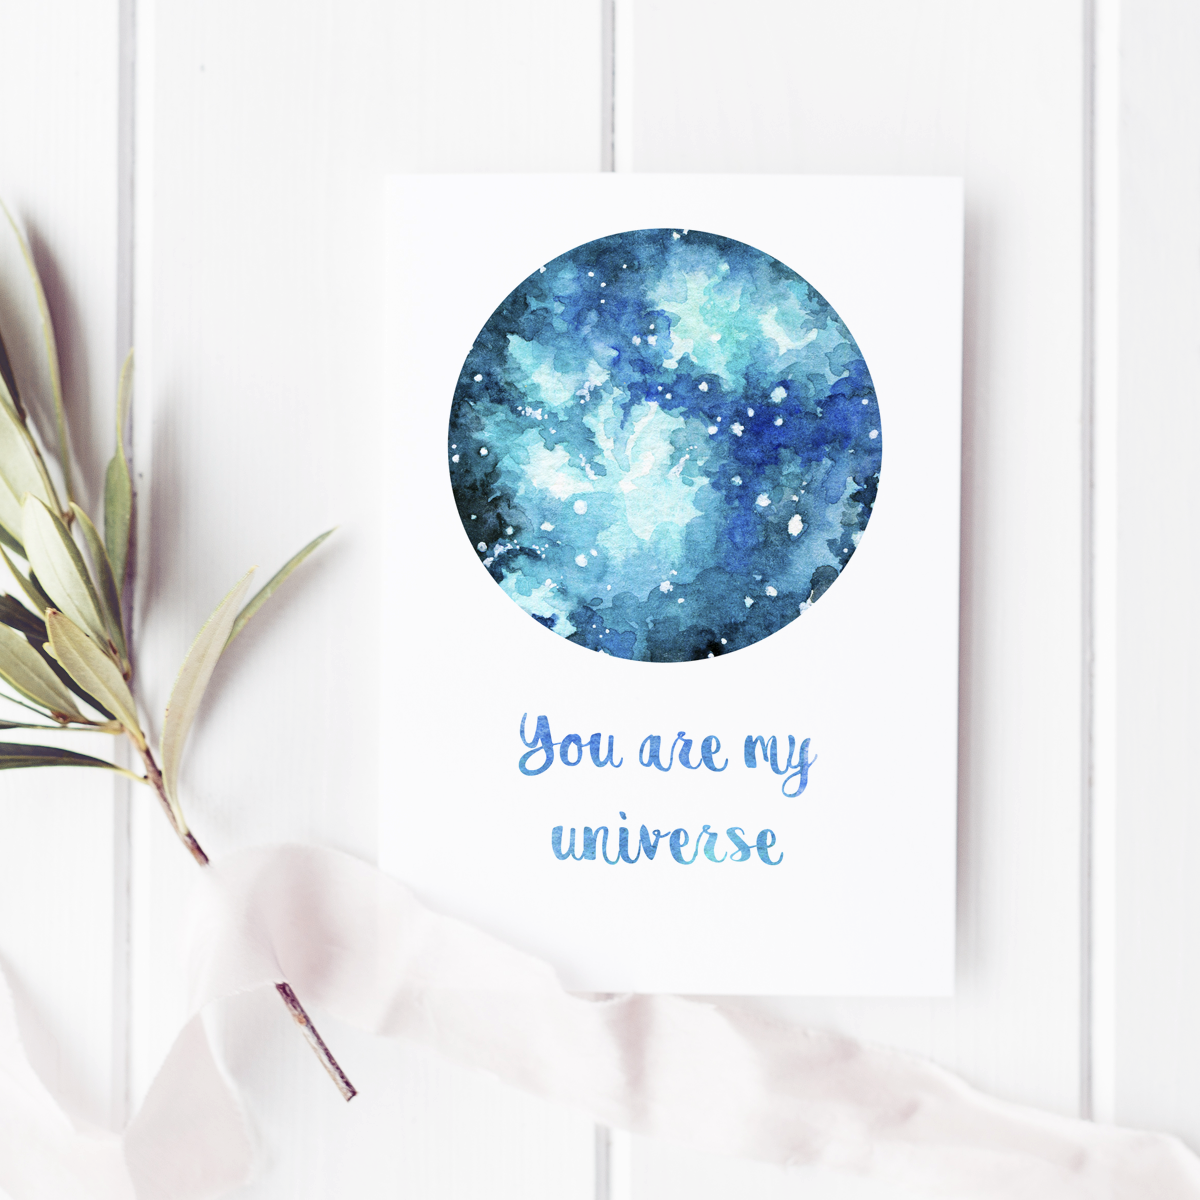 """A minimalist & romantic PRINTABLE card with a simple watercolour galaxy art. """"You are my Universe"""" script is customizable. :)  The digital download file for this A5 Valentine's card can be printed at home - perfect for a last-minute DIY gift!  * A bonus red night sky illustration decorates the back of the A5 card and the printable design comes with a wide margin and guidelines to make your printing, cutting, and folding easy!  * The calligraphy element can be personalized - request a customization and I'll add a personal message with the same watercolor pattern font."""